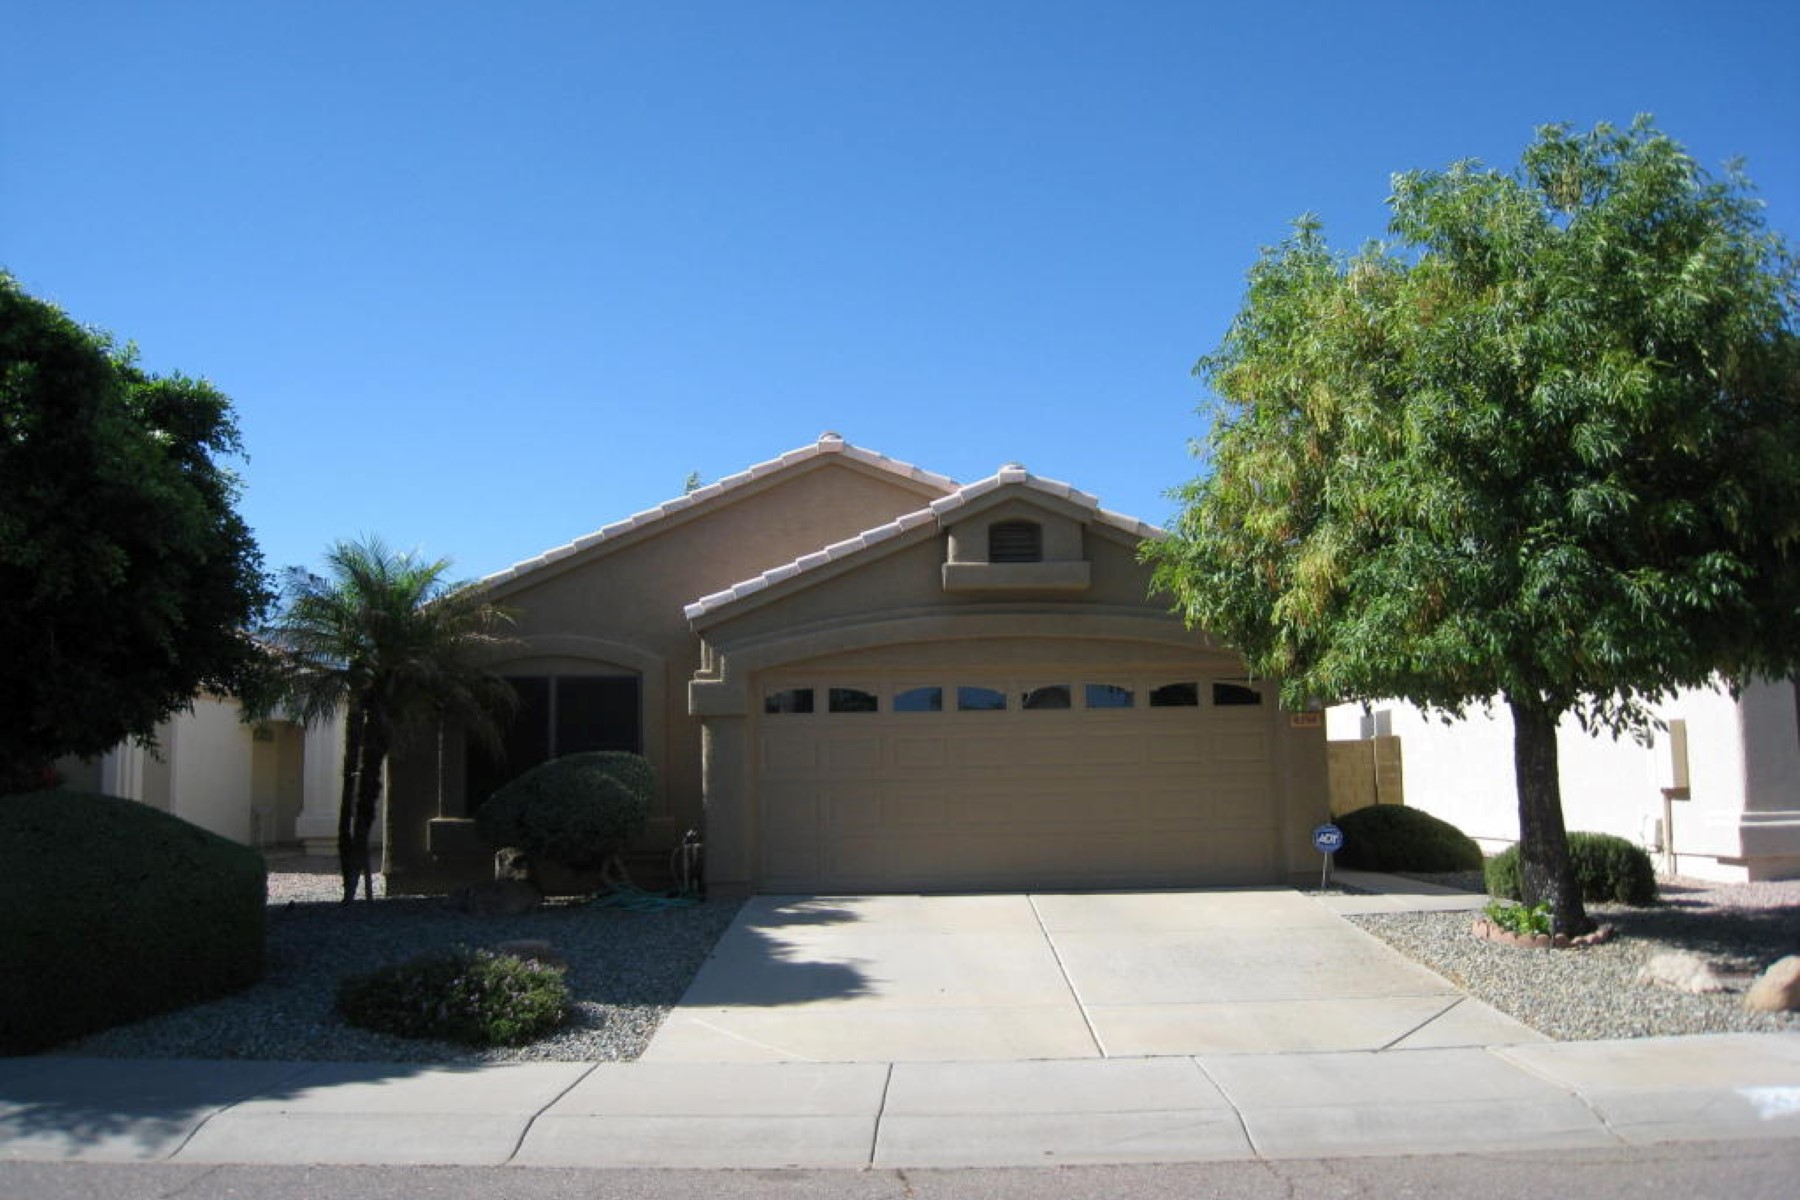 Single Family Home for Sale at Beautiful single level home with three bedrooms and two baths. 4356 E HARTFORD AVE Phoenix, Arizona 85032 United States